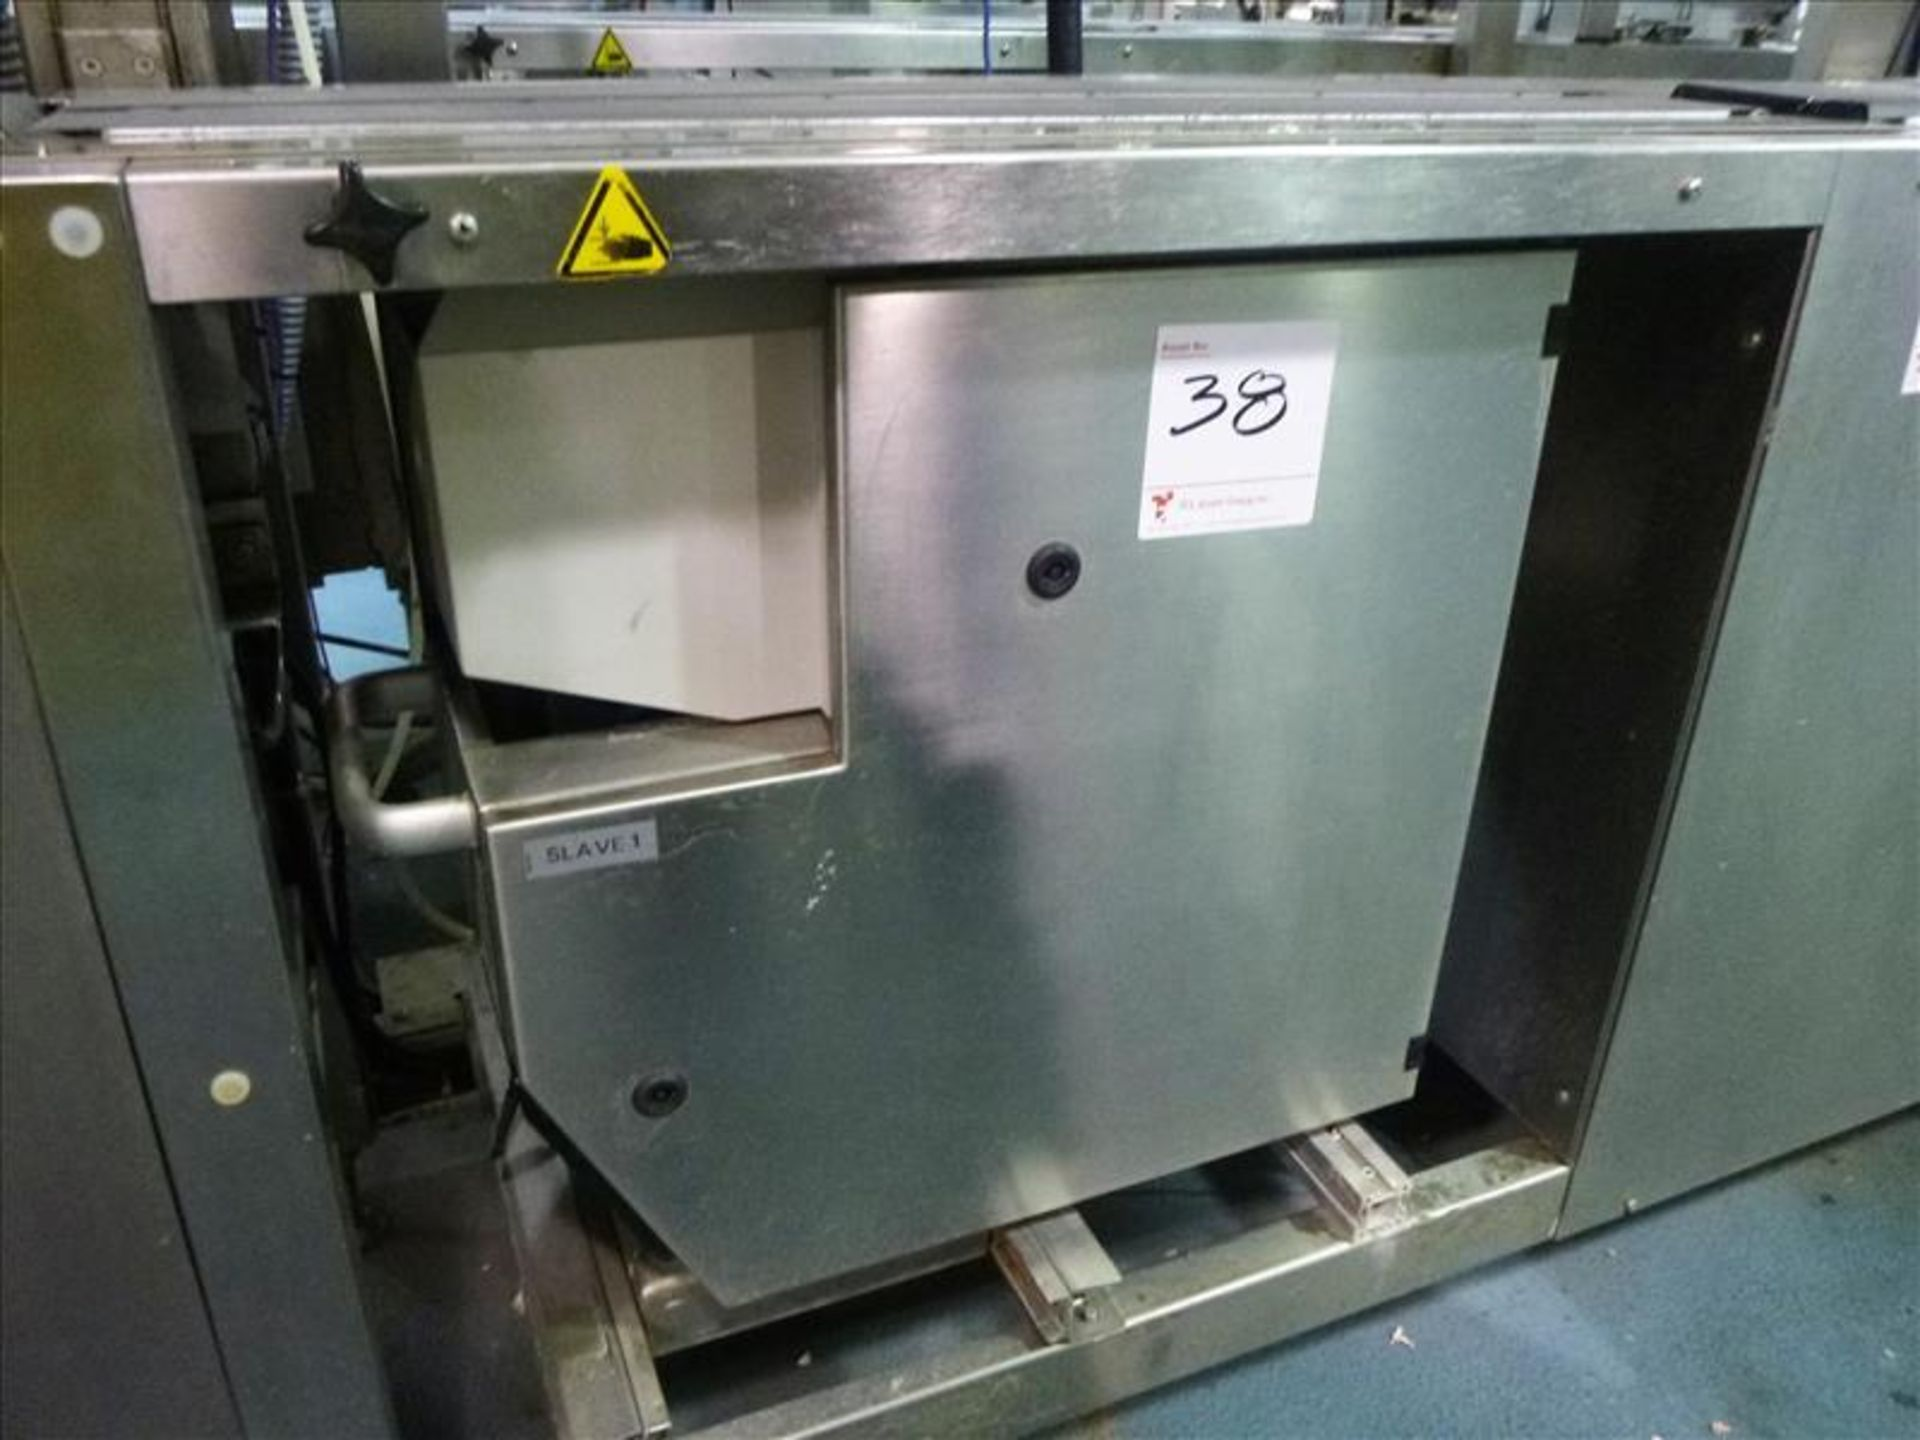 Lot 38 - Bizerba in-line check-weigher system (SLAVE1) w/ Bizerba GS label printer and Bizerba AB controller,